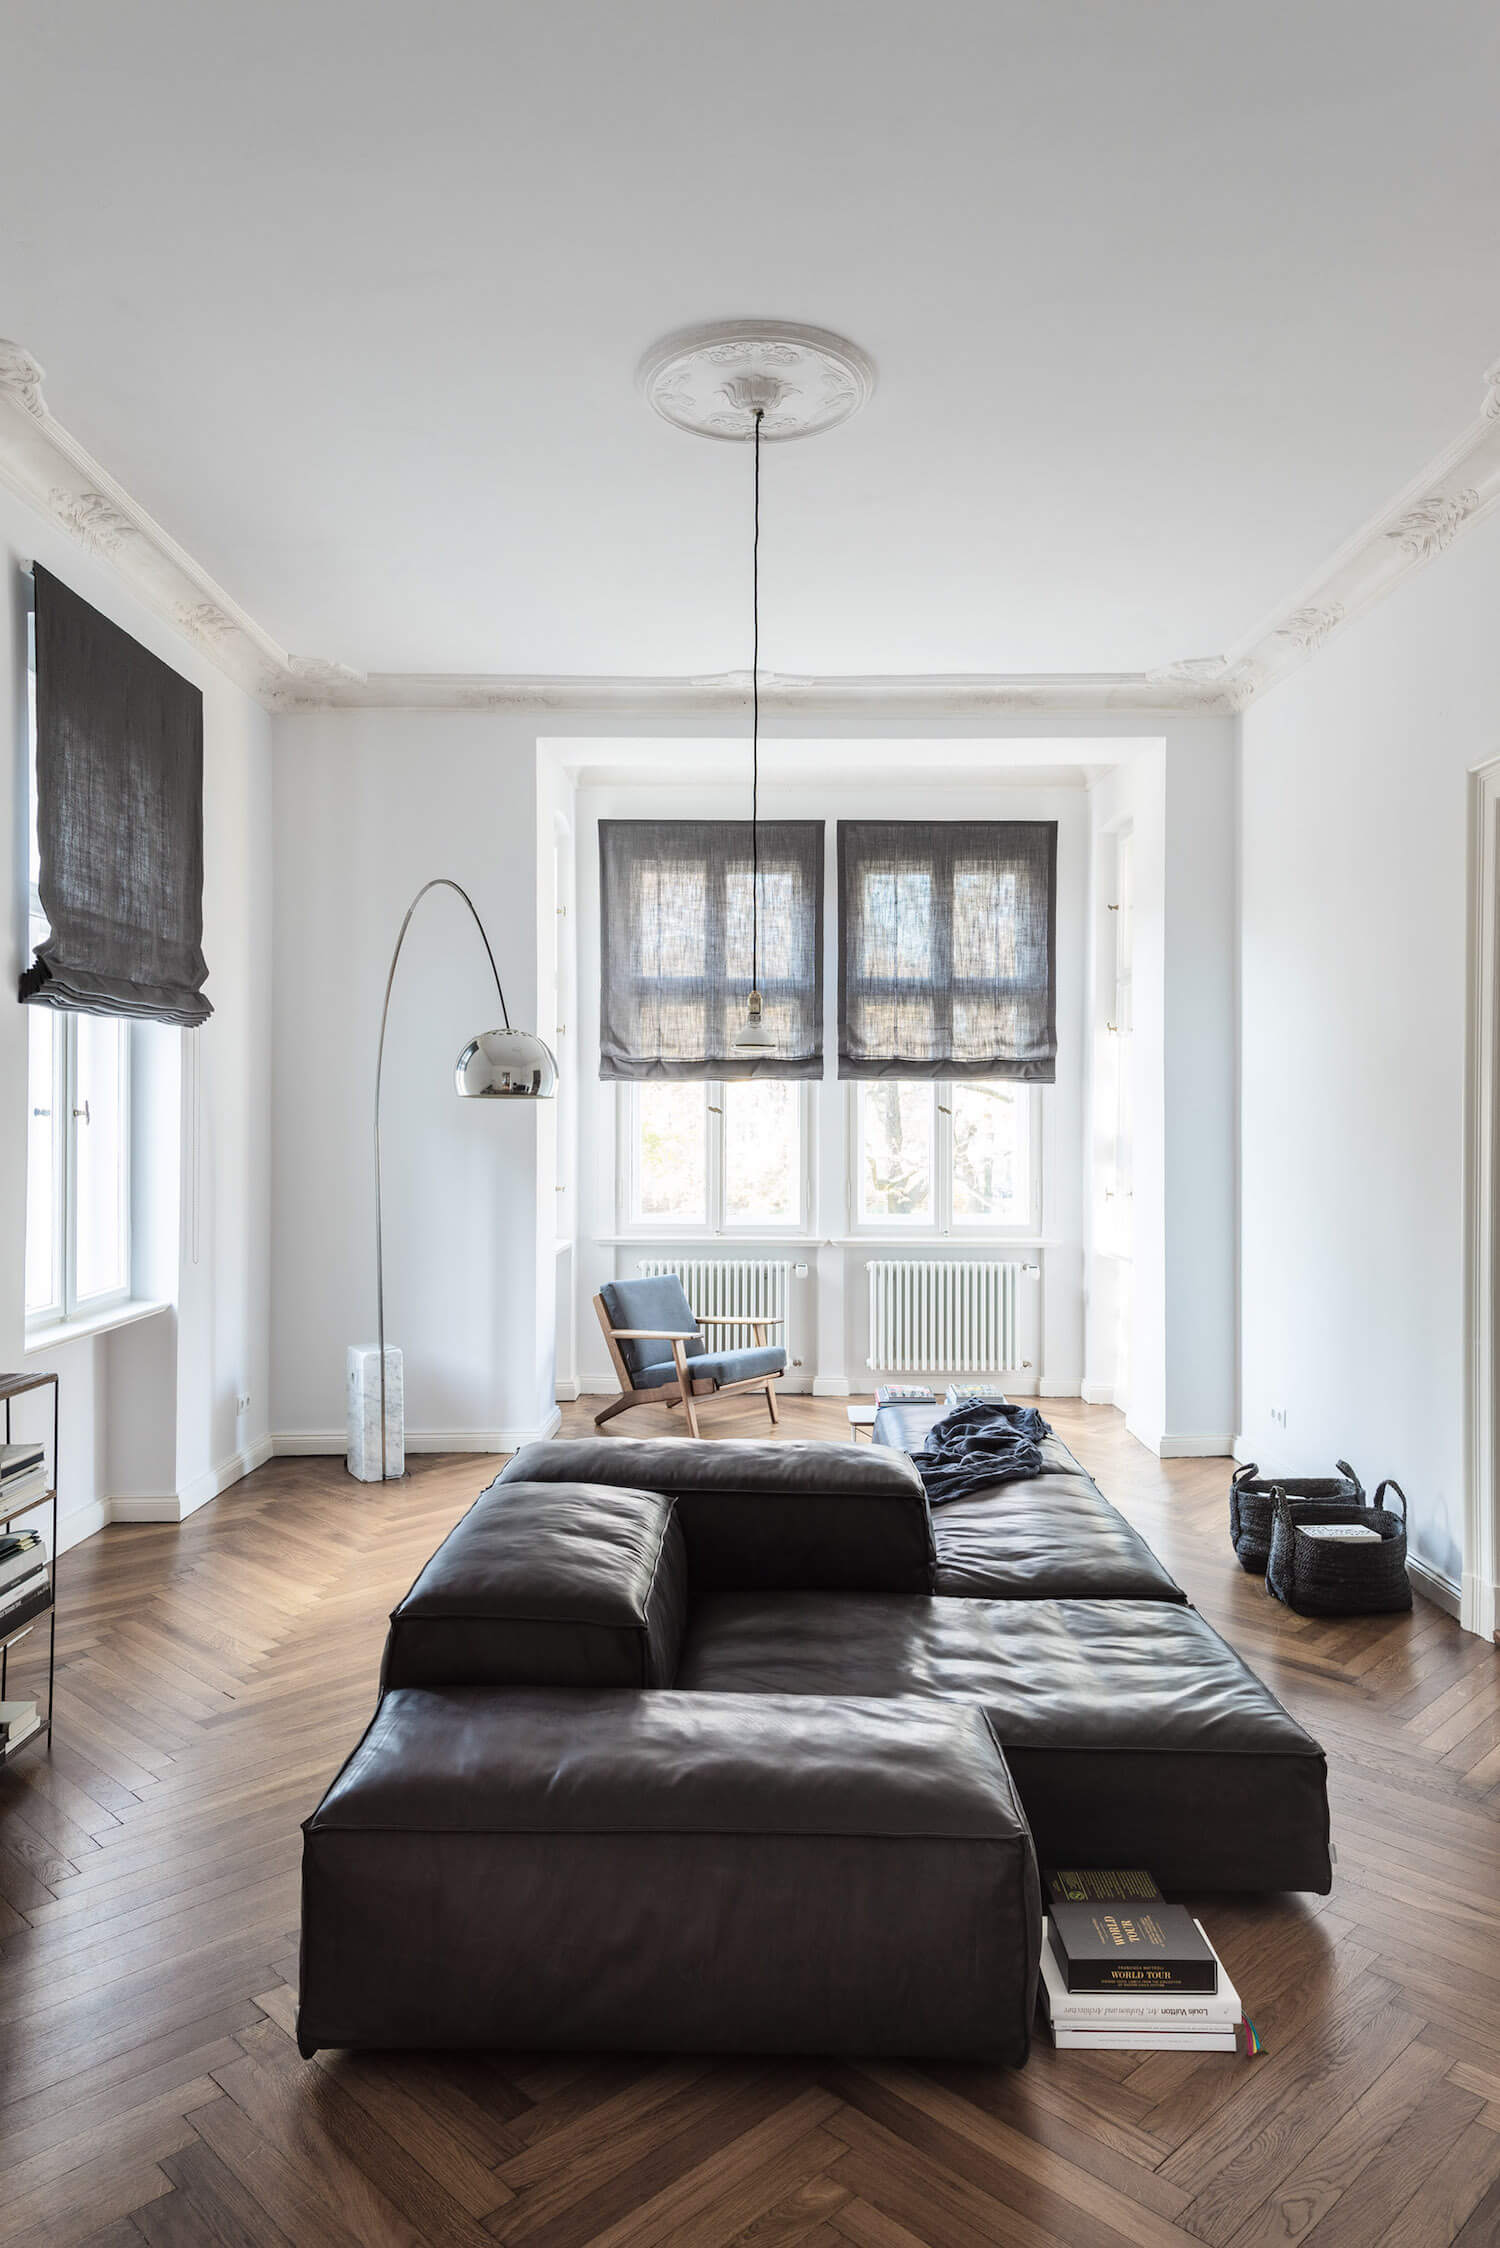 Berlin Apartment From The 19th Century Coco Lapine